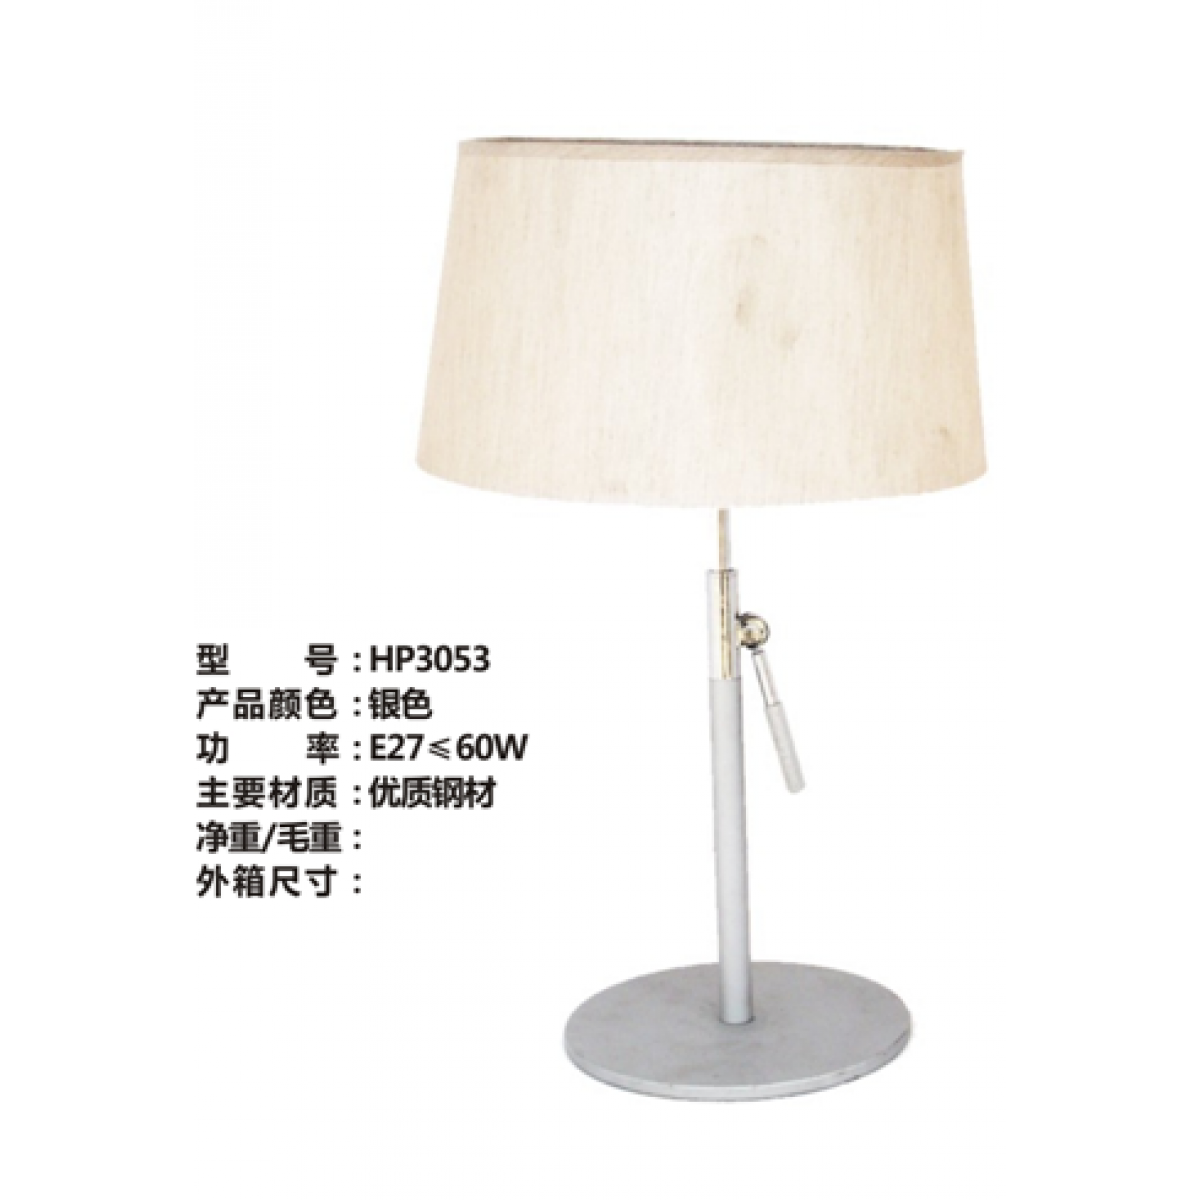 Hotel Desk Reading Lamp With Steel Nickle And Chrome Contemporary Design Made In China Hospitality Lighting Supplier Coart Item Hp3053